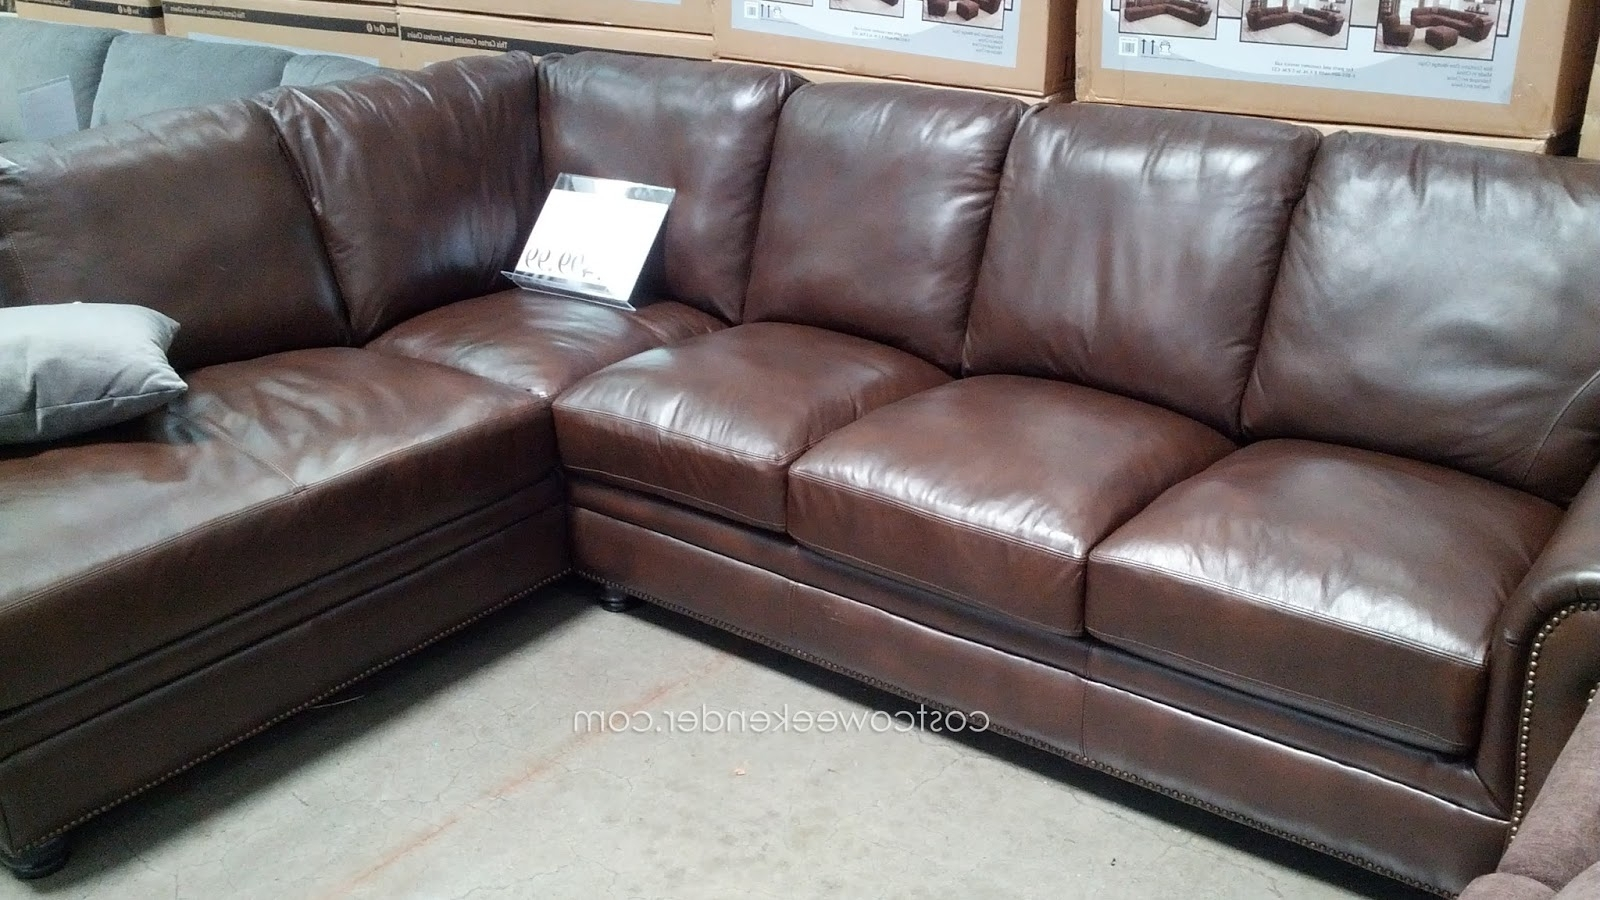 Sectional Sofas At Costco Intended For Most Recently Released Sectional Sofa Design: Costco Sectional Sofas Best Ever Leather (View 13 of 15)